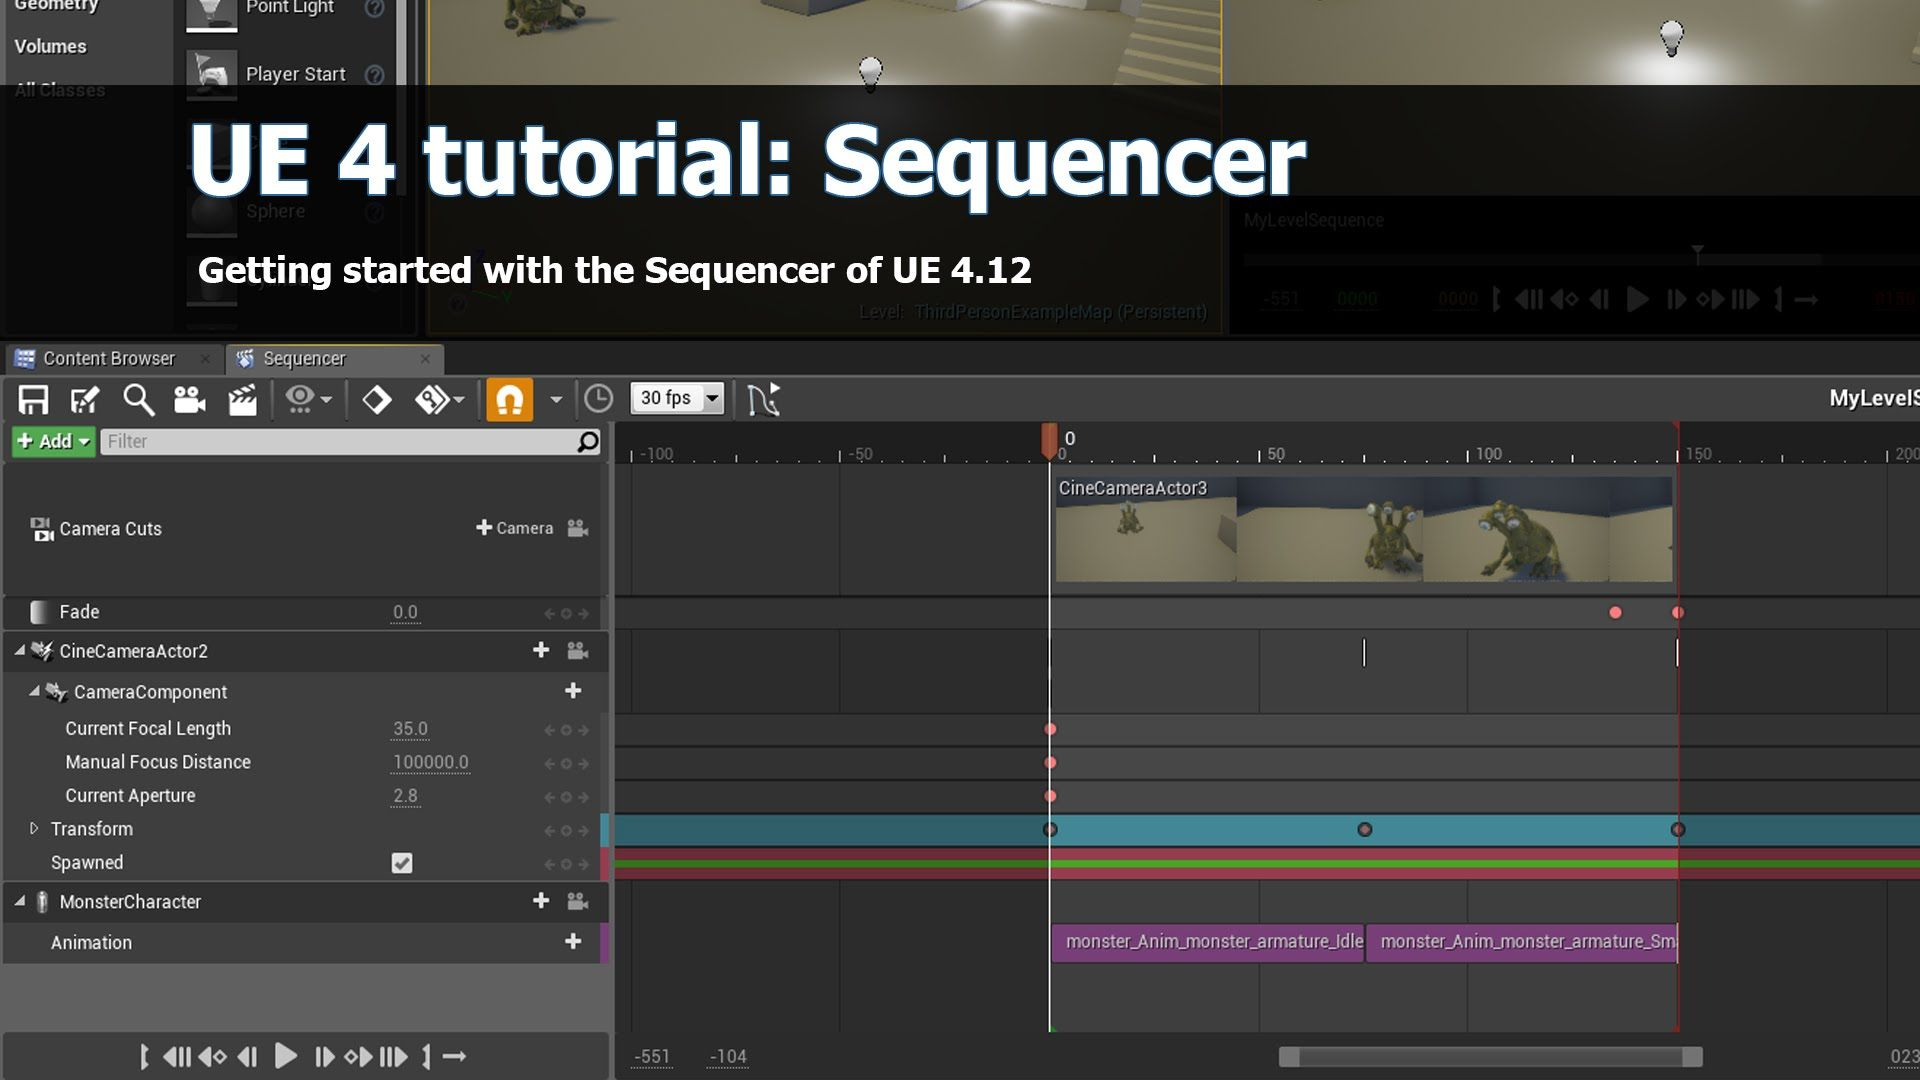 UE4 Sequencer Tutorial: Getting started | ue4 tutorials